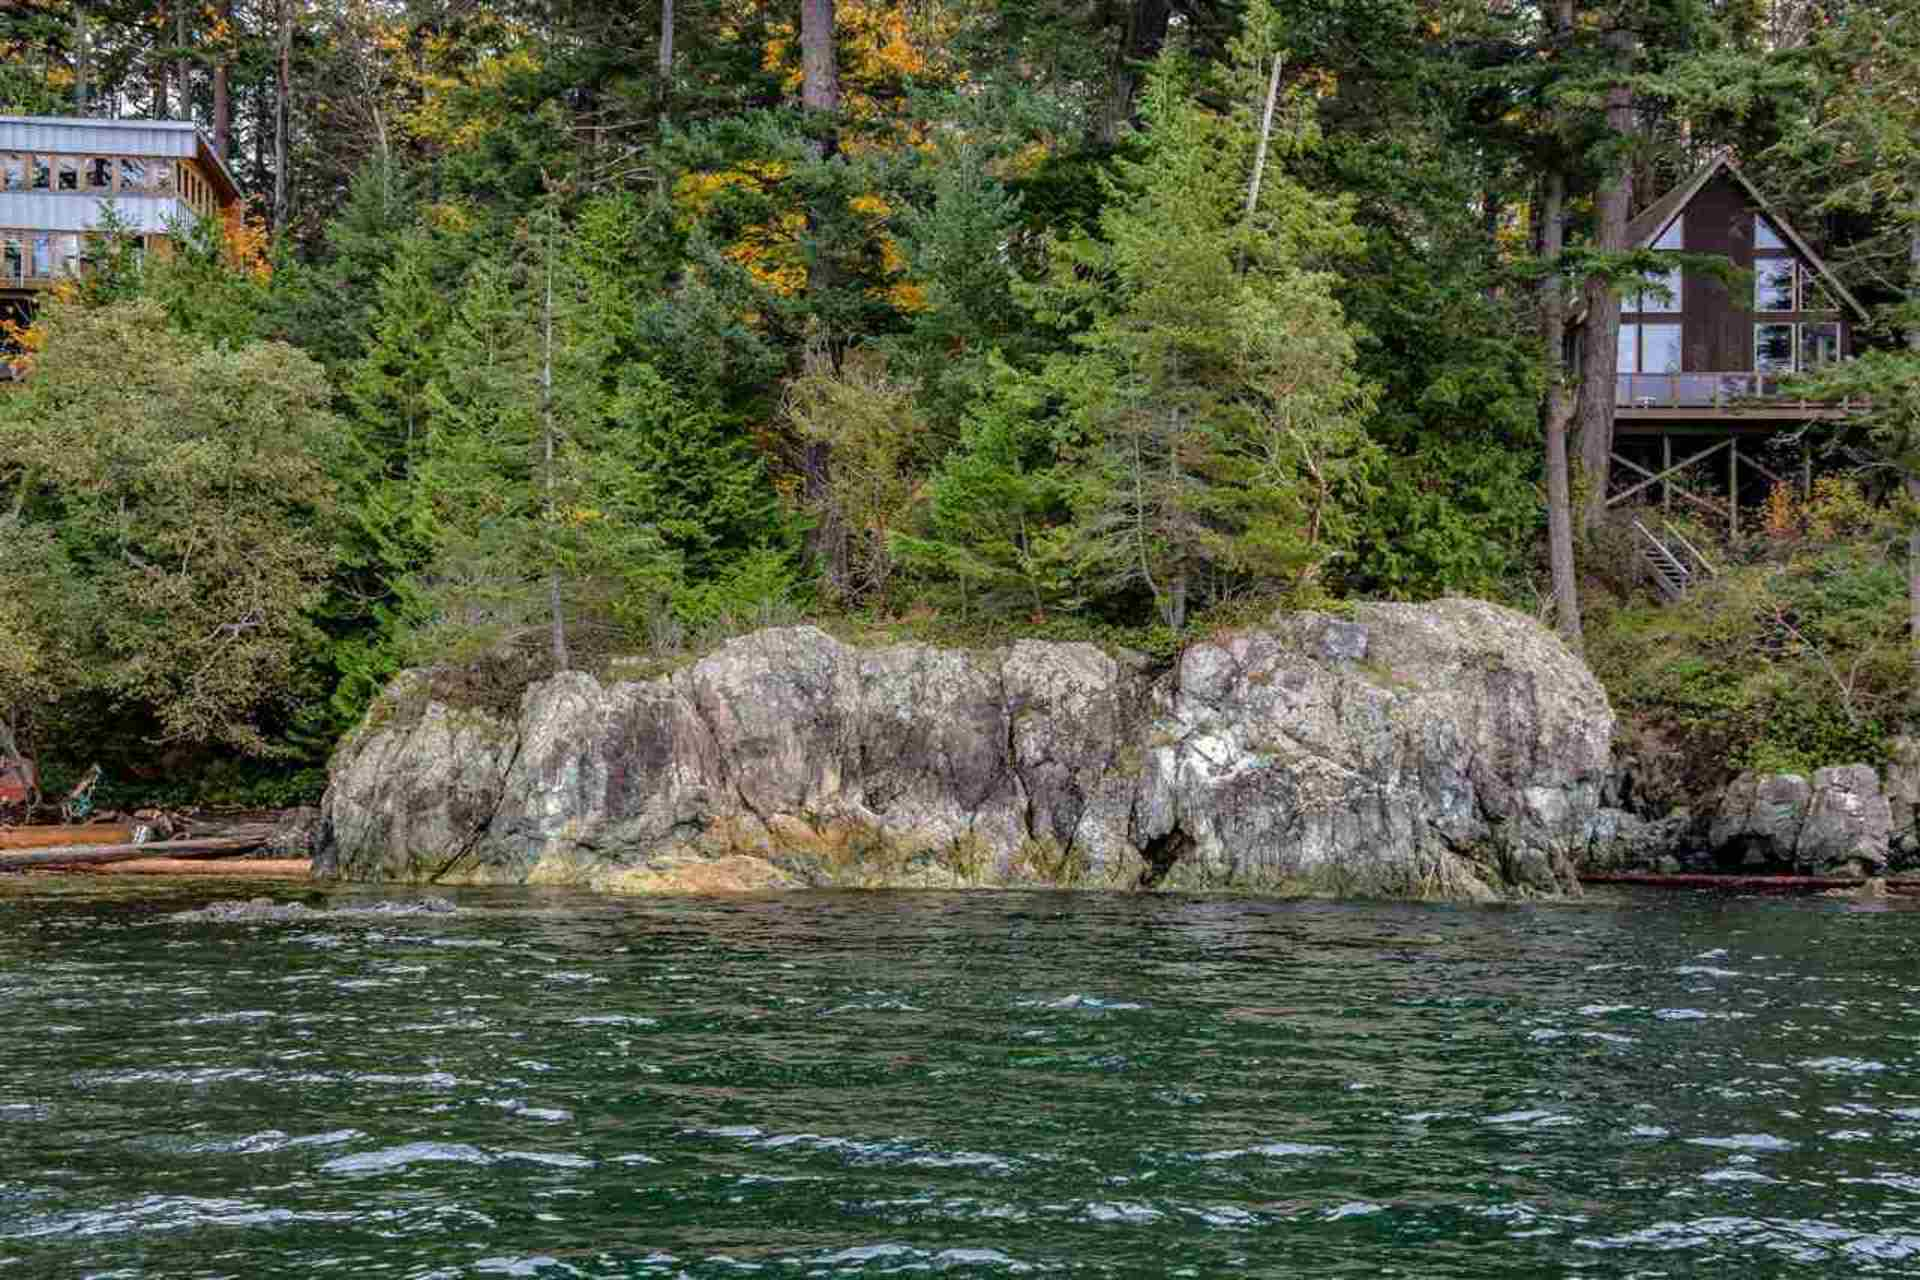 38-passage-island-howe-sound-west-vancouver-17 at 38 Passage Island, Howe Sound, West Vancouver